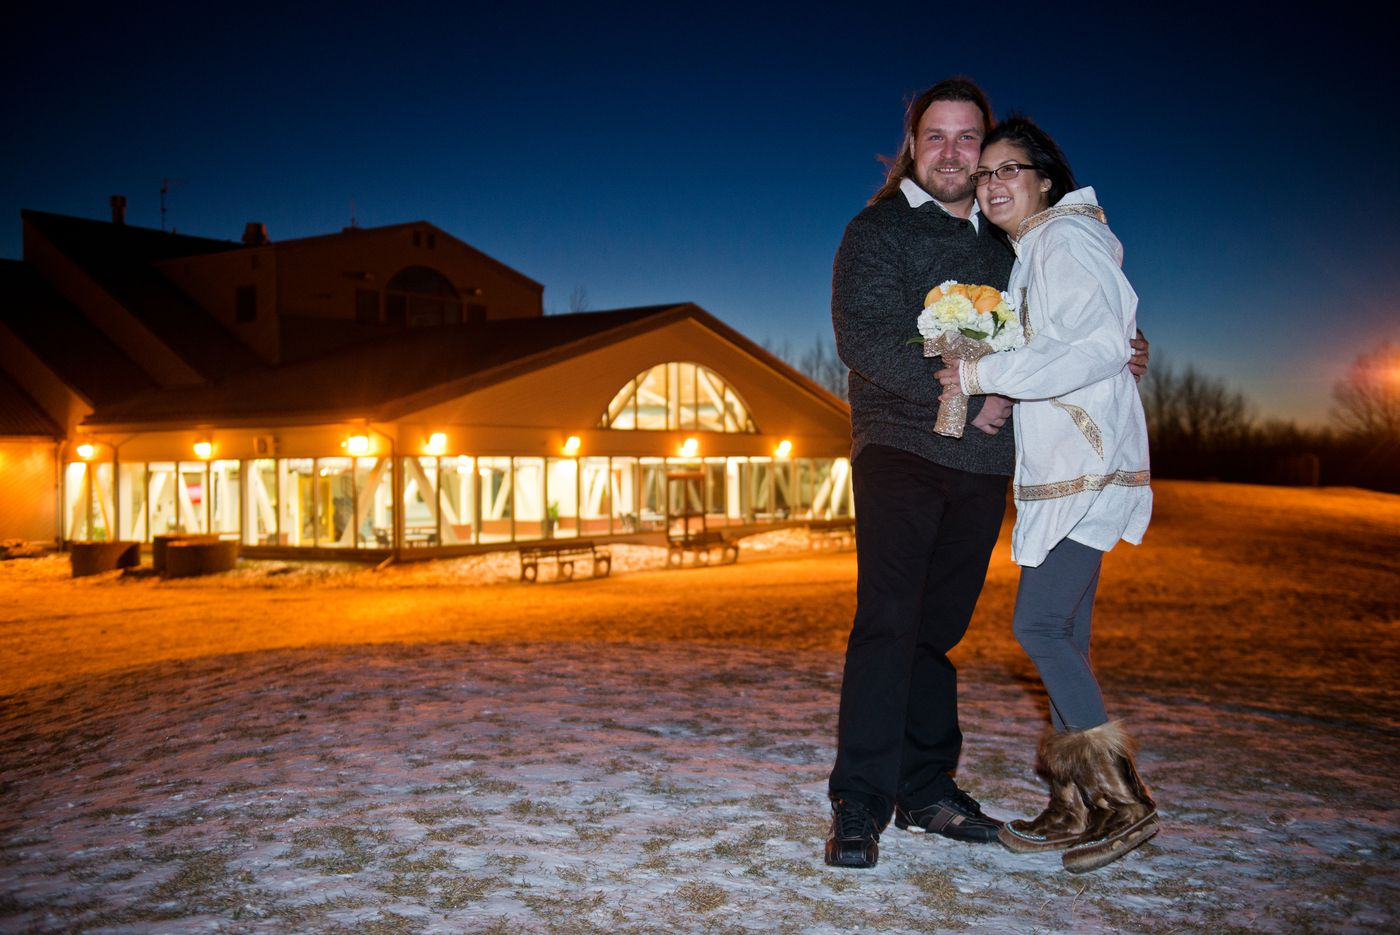 Tom Kehrberg and Barb Towarak were married at a small ceremony at the Kincaid Park Chalet on Thursday, December 10, 2015.